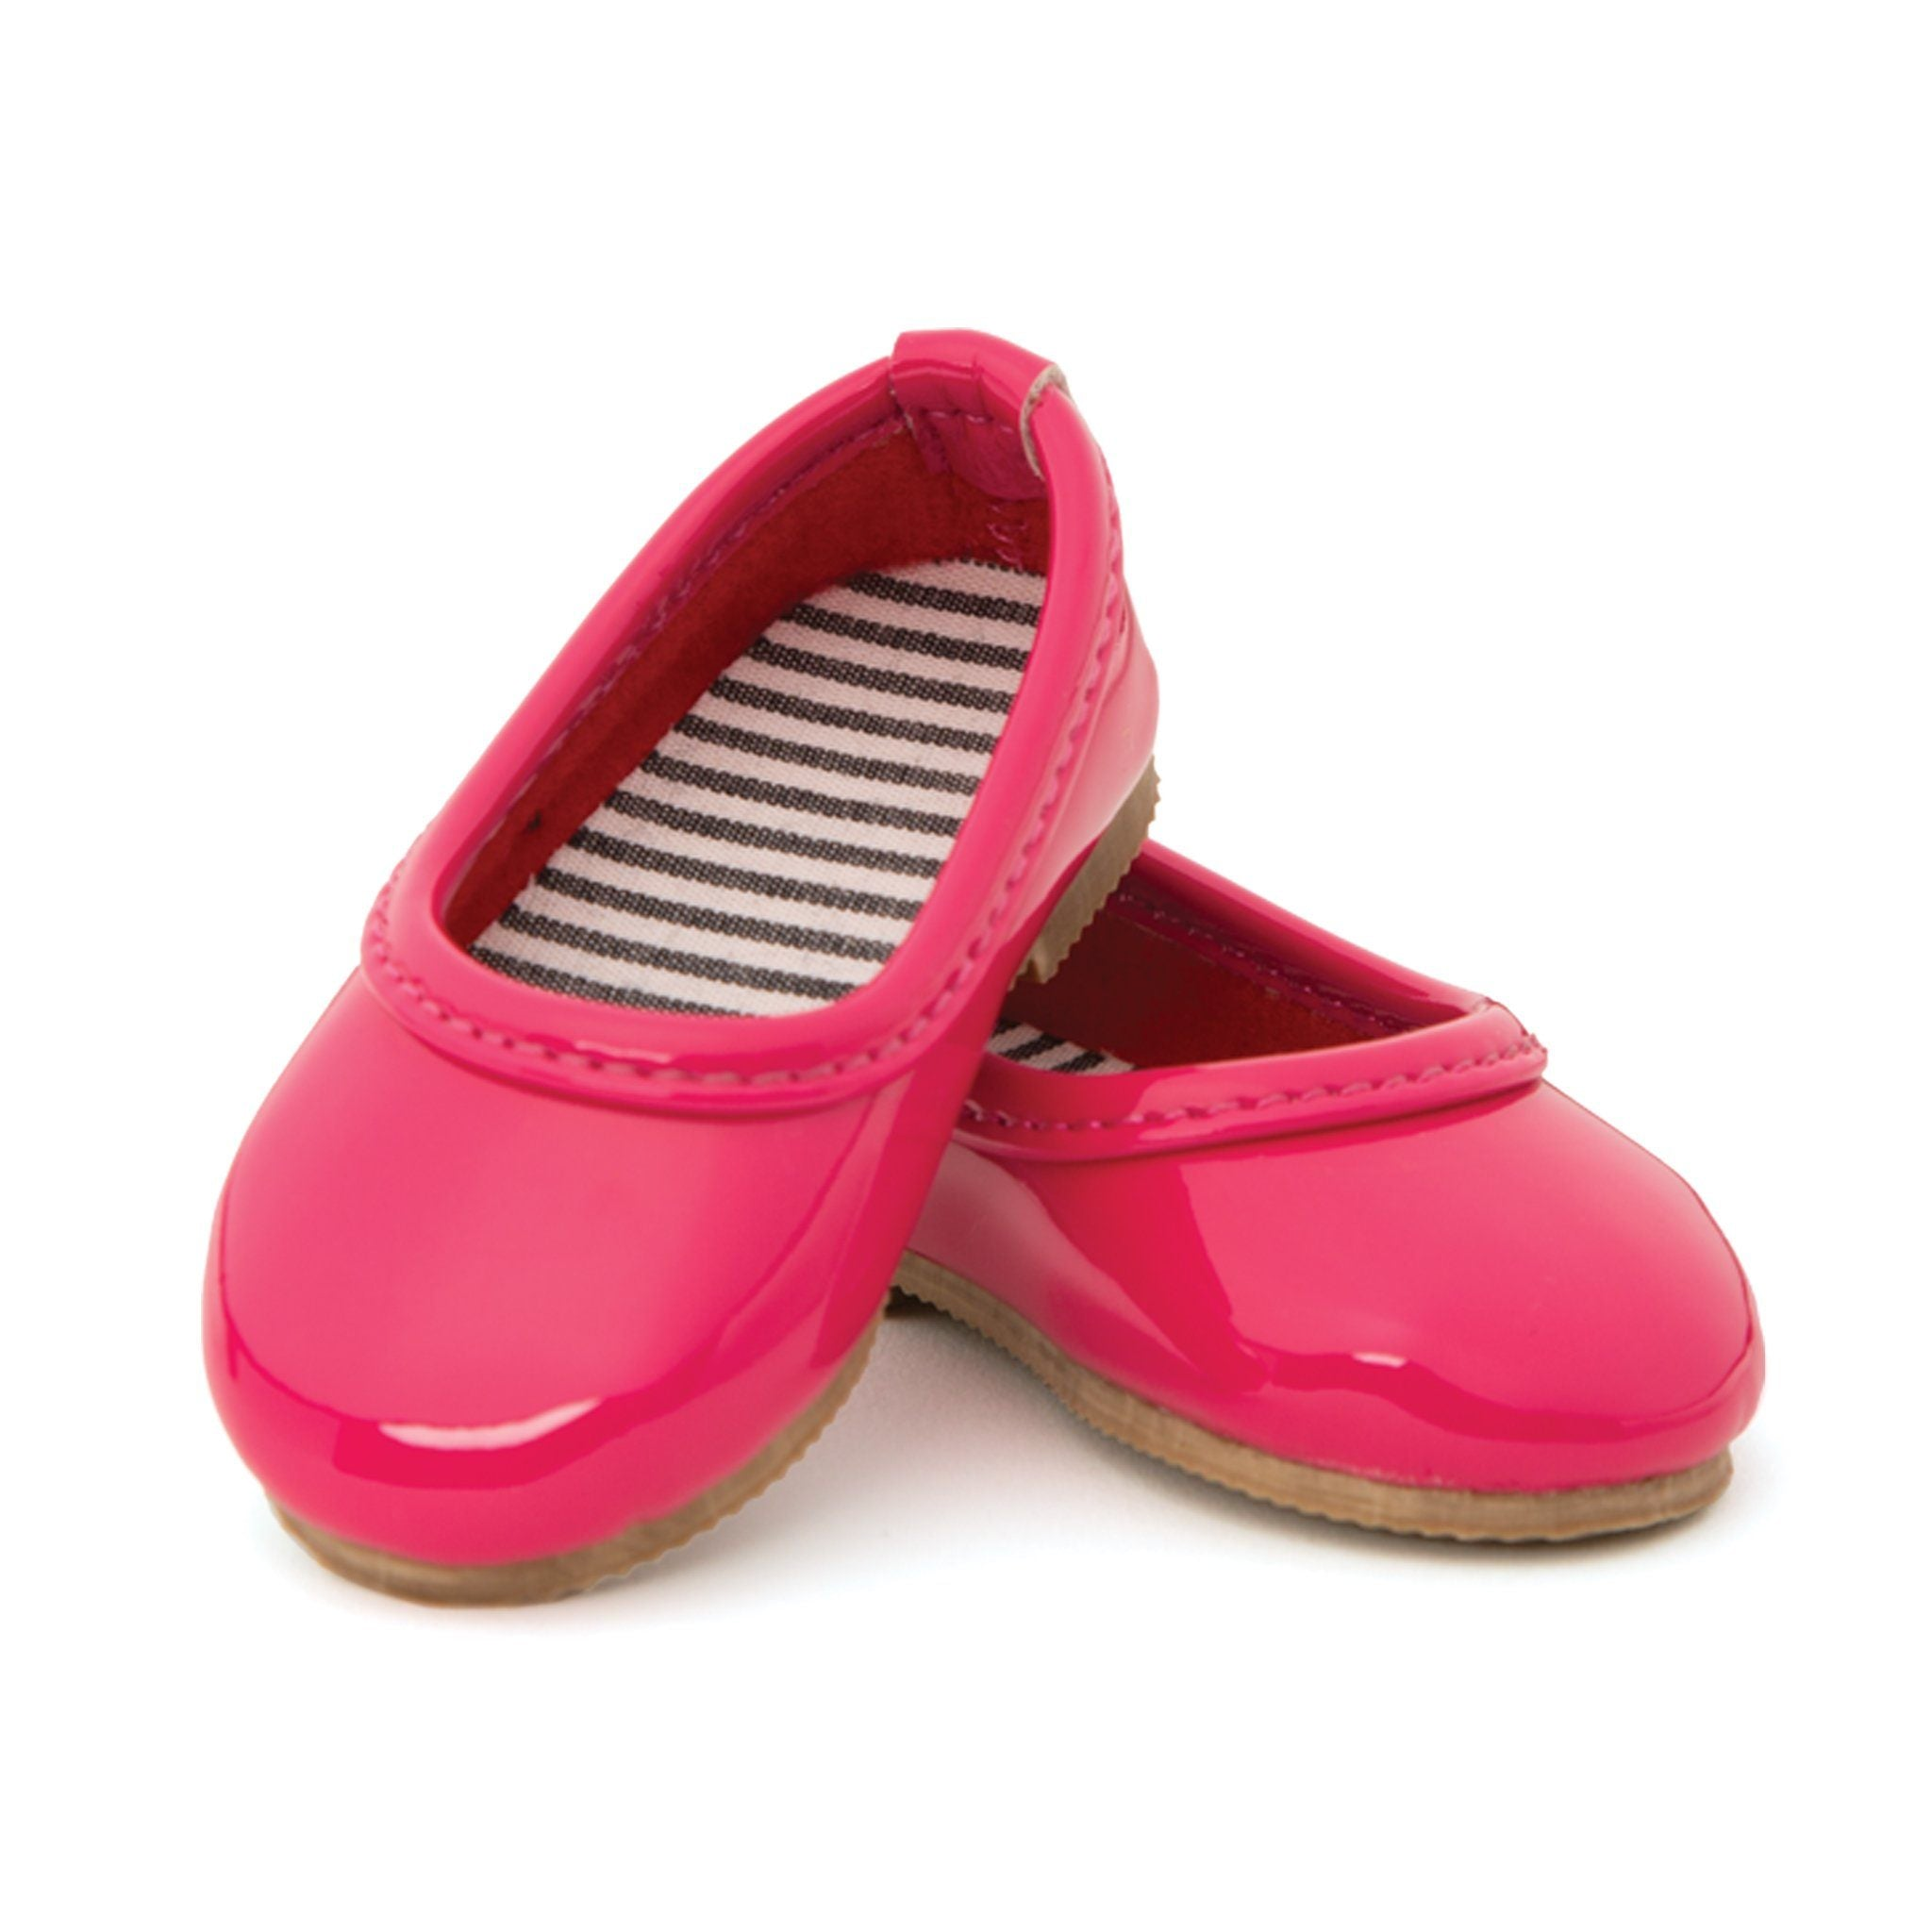 Ile de passage bright pink shiny flats. Fits all 18 inch dolls.